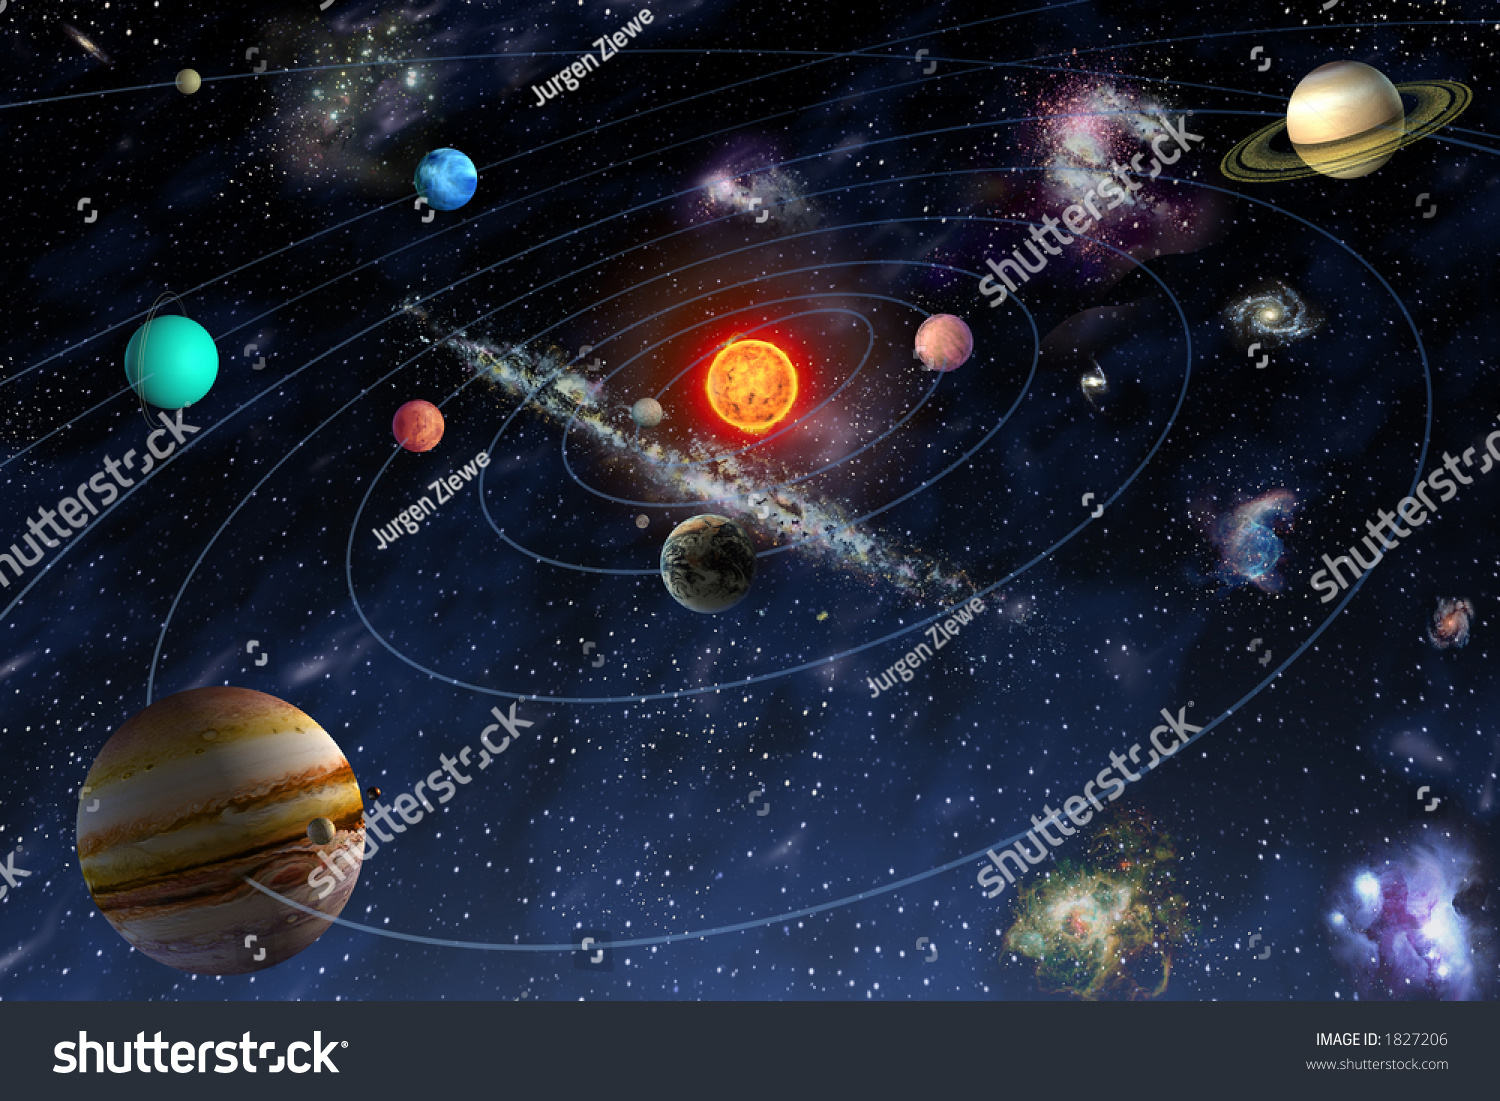 diagram of the planets in the solar system stock photo 1827206  : planets diagram - findchart.co